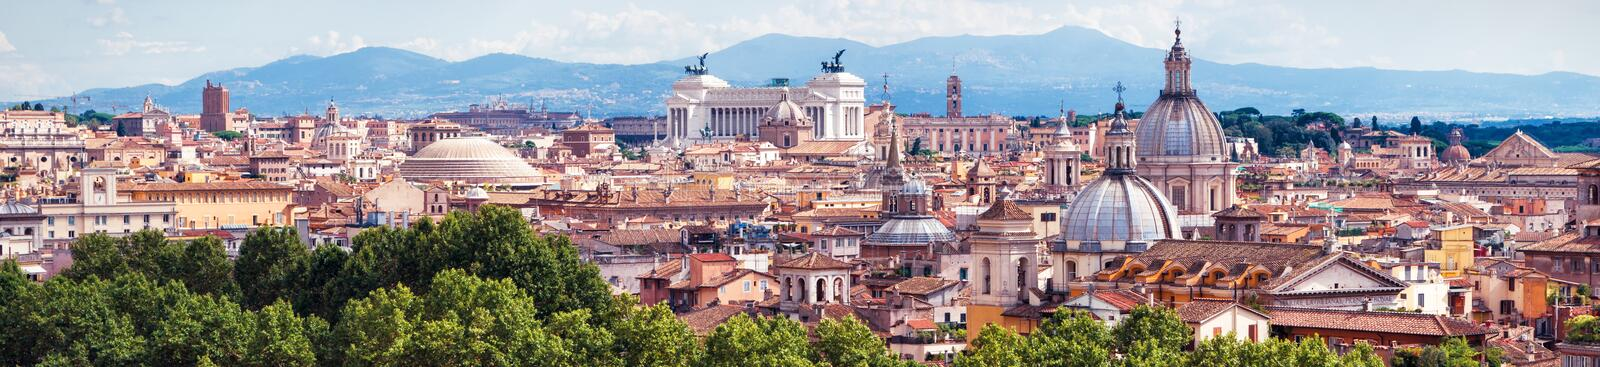 Aerial panoramic view of Rome, Italy stock photo